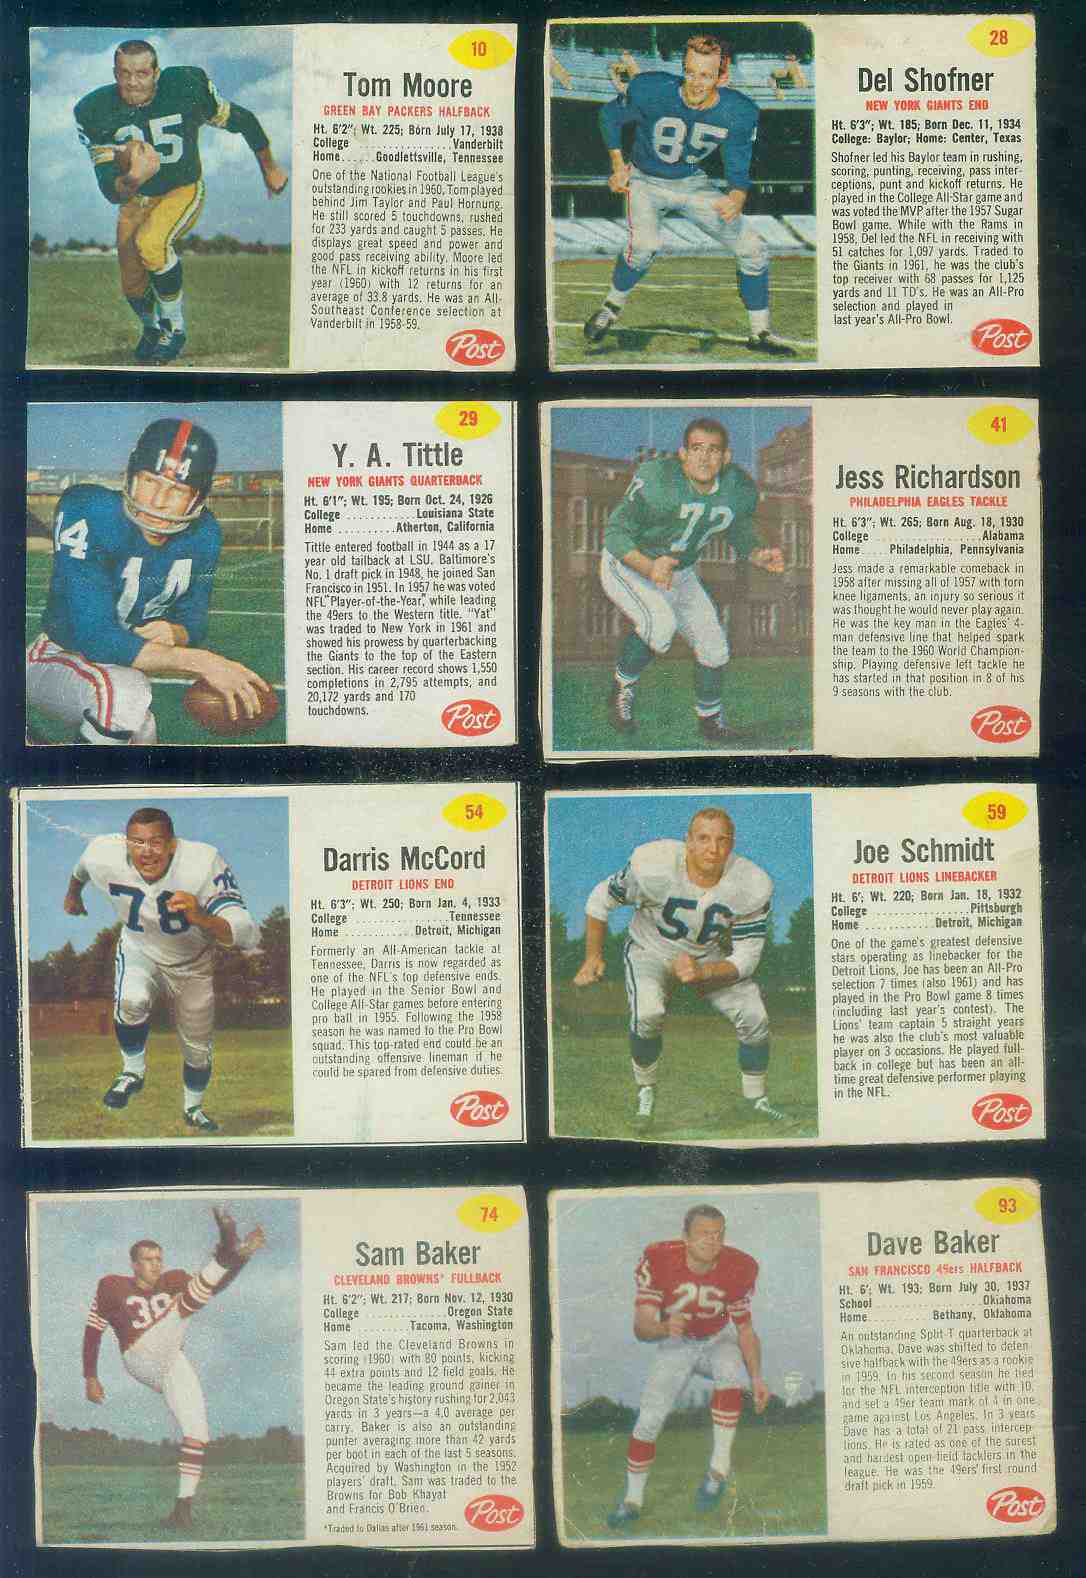 1962 Post Cereal FB #.54 Darris McCord SHORT PRINT (Lions) Football cards value